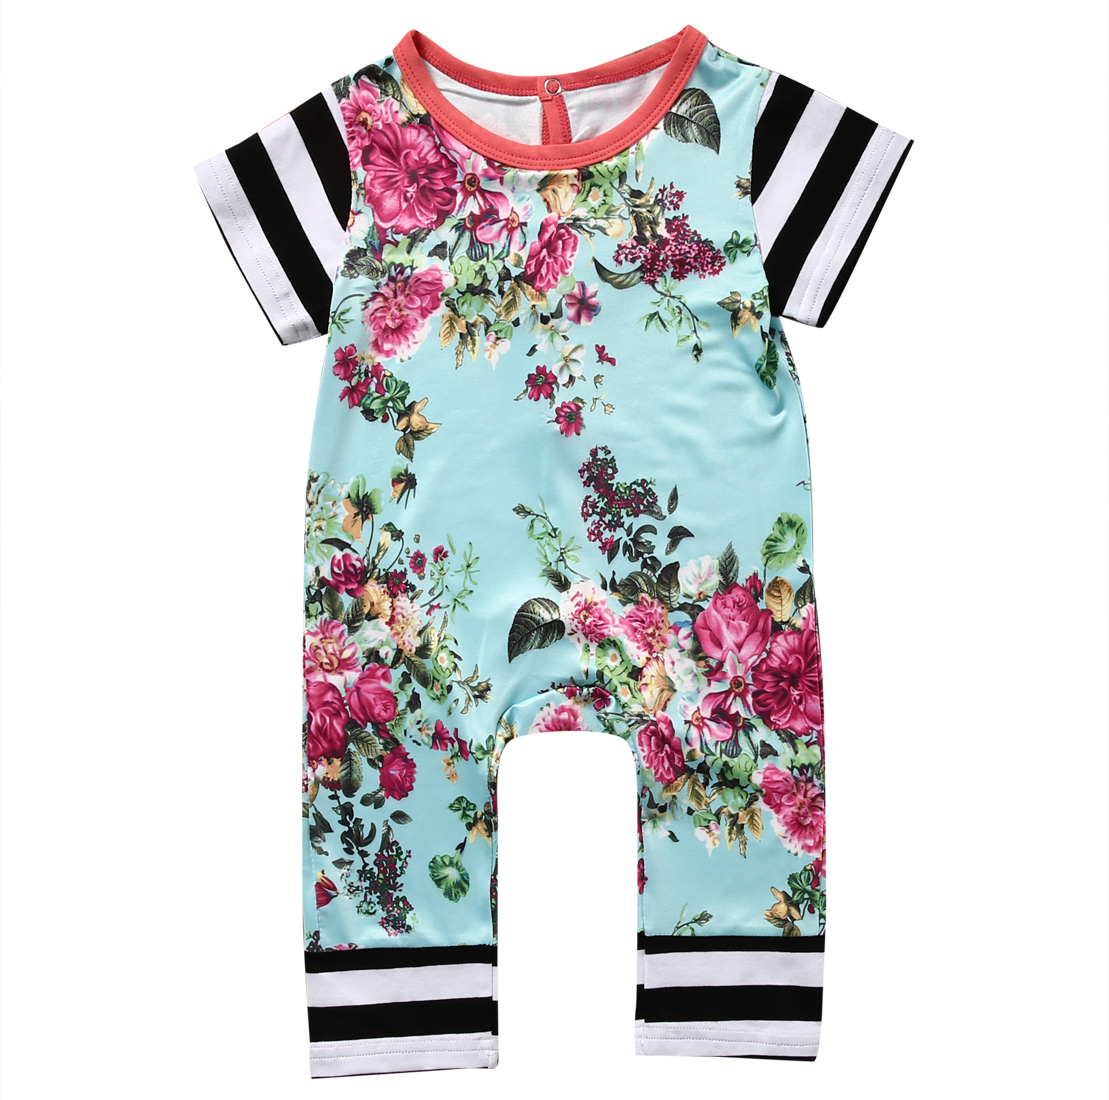 Cute Newborn Baby Boy Girl short sleeve Floral Print Romper Jumpsuit Kids Toddler cotton summer Outfit Sunsuit